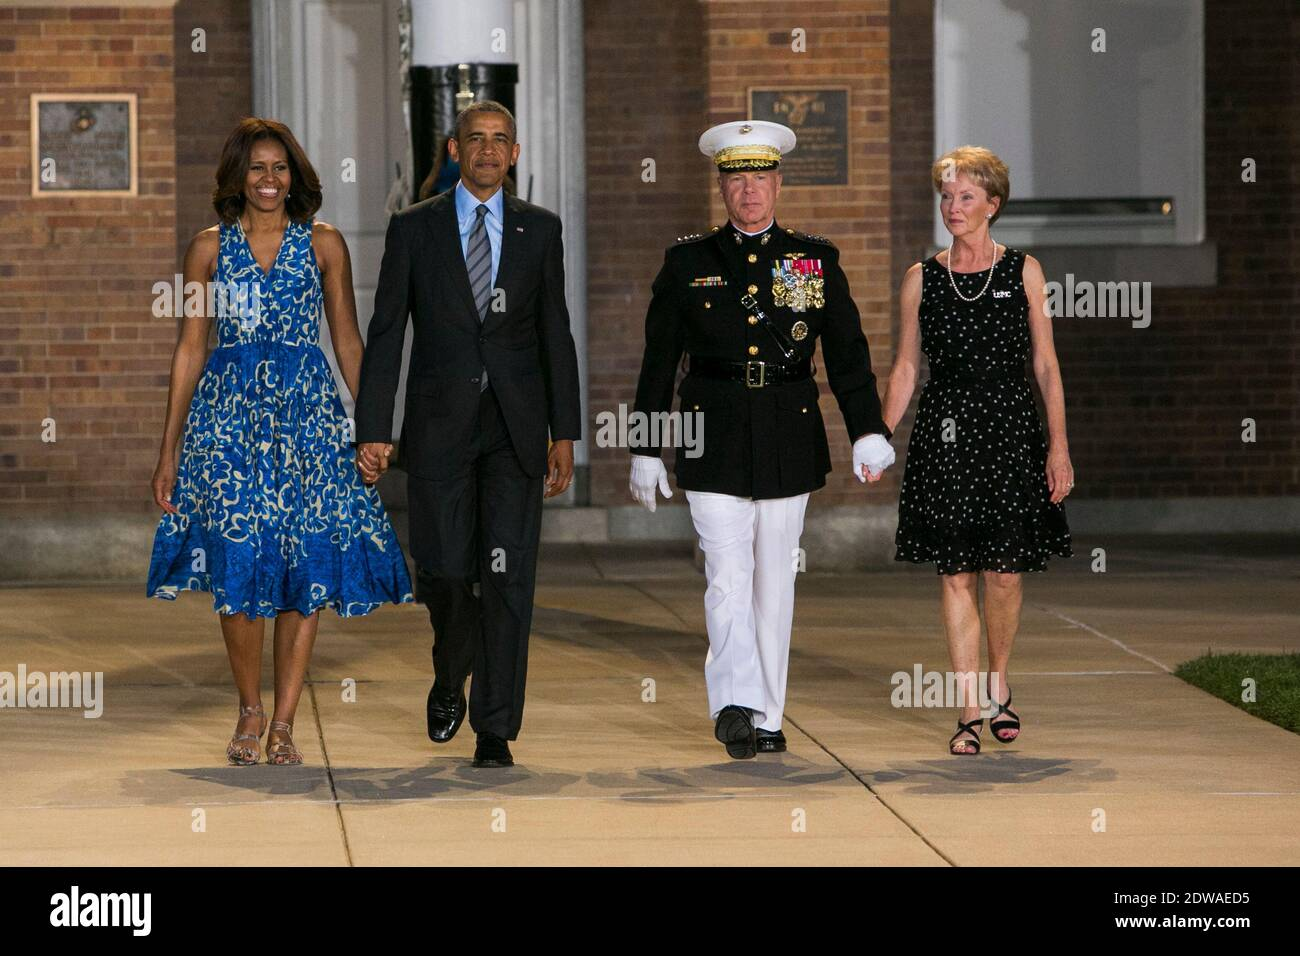 President Barack Obama, left, First Lady Michelle Obama, center left, Marine Corps Commandant General James F. Amos, center right, and his wife Bonnie, right, arrive to the Marine Barracks Evening Parade in Washington, DC, USA., on June 27, 2014. Photo by Kristoffer Tripplaar/Pool/ABACAPRESS.COM Stock Photo